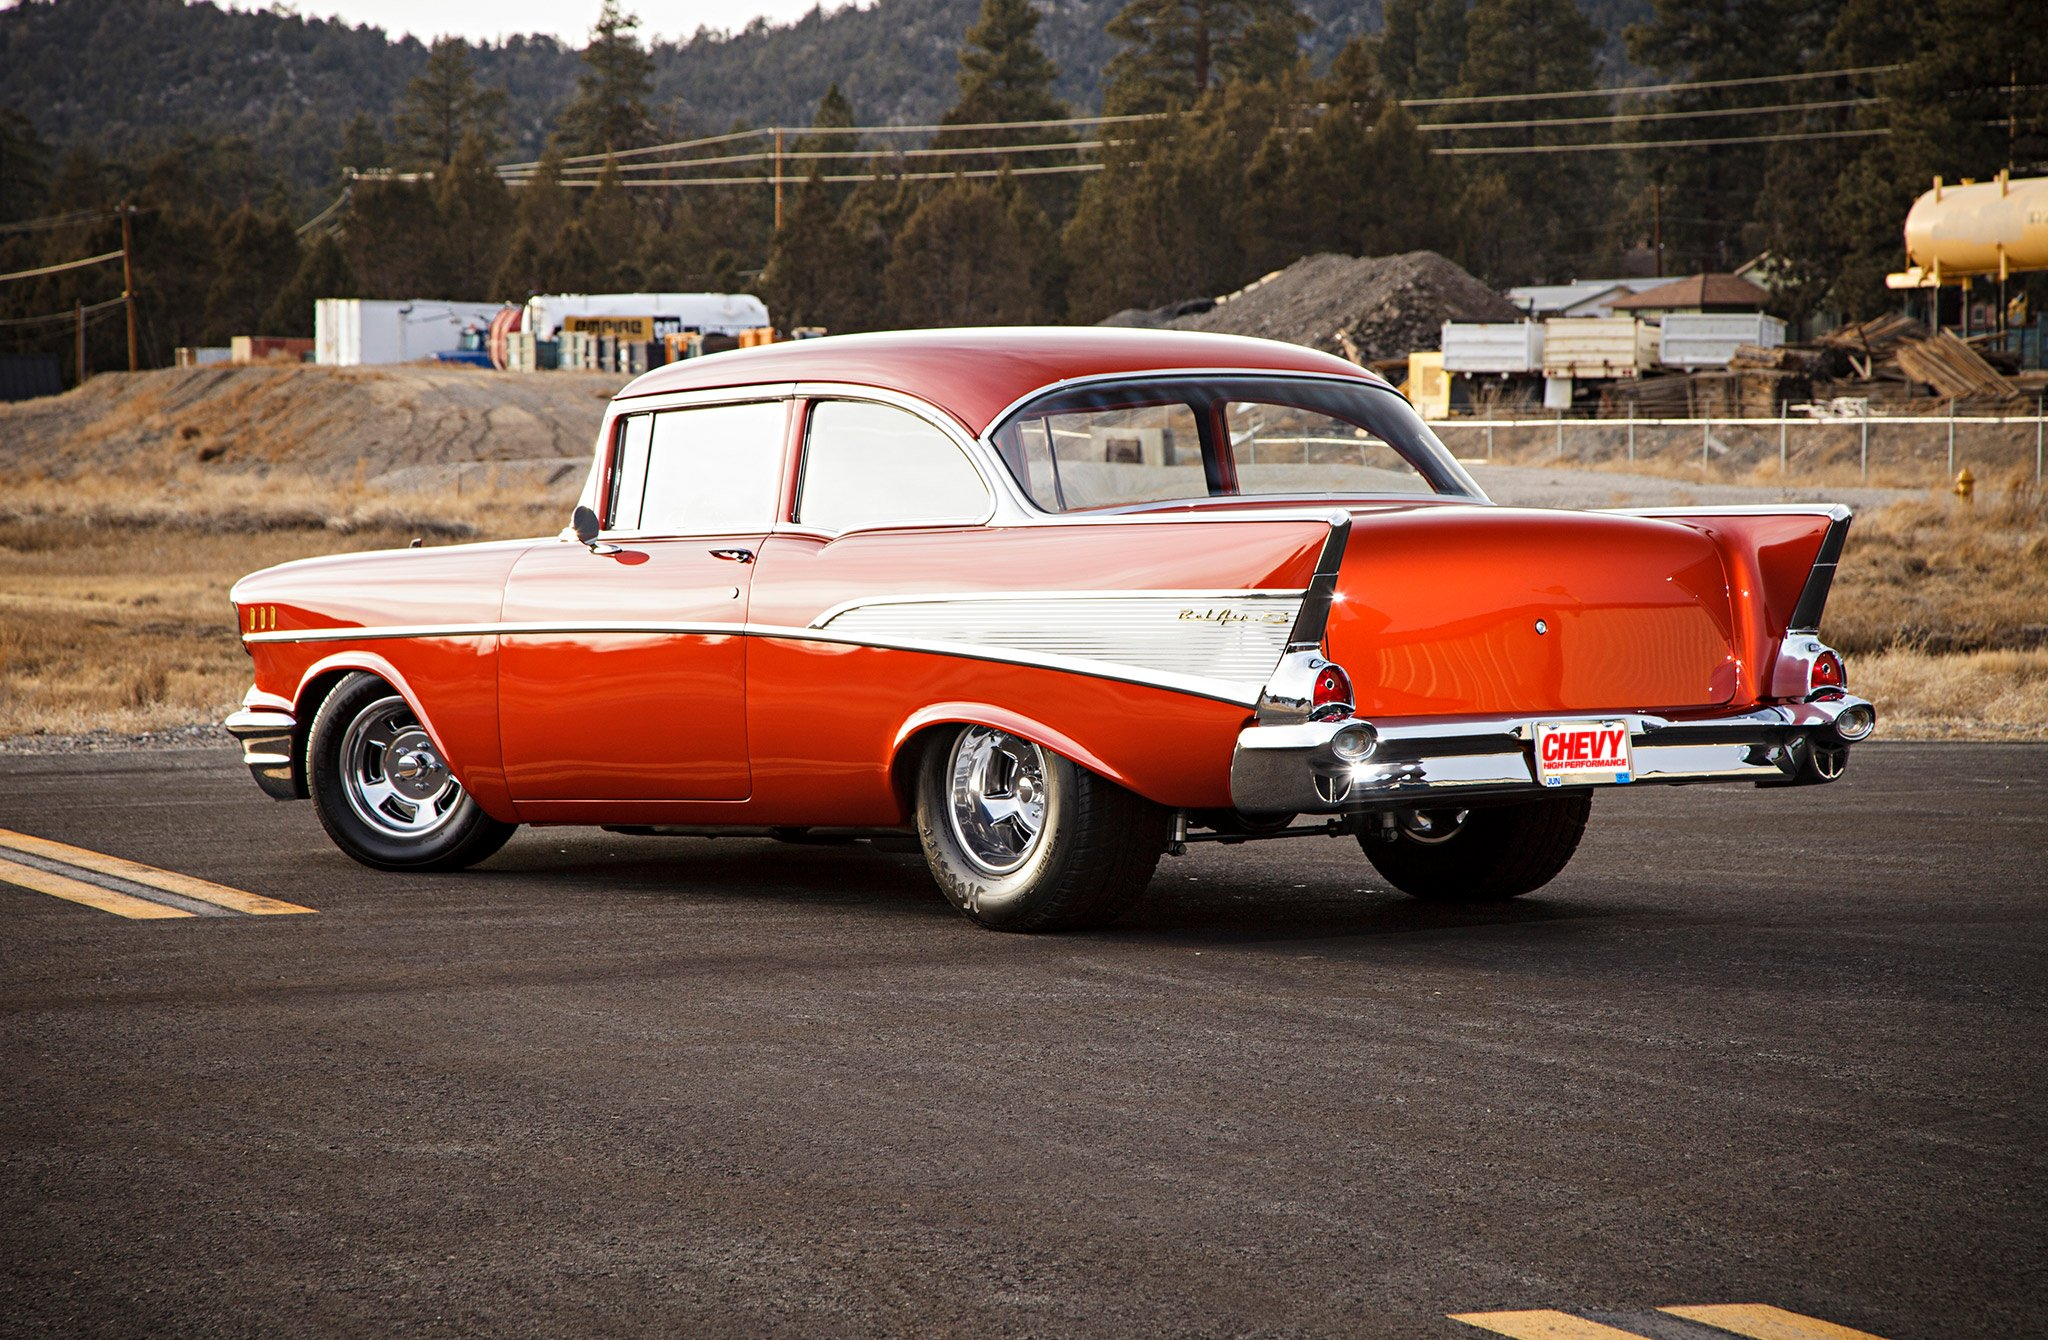 1957 Chevrolet Belair Hardtop-05 wallpaper